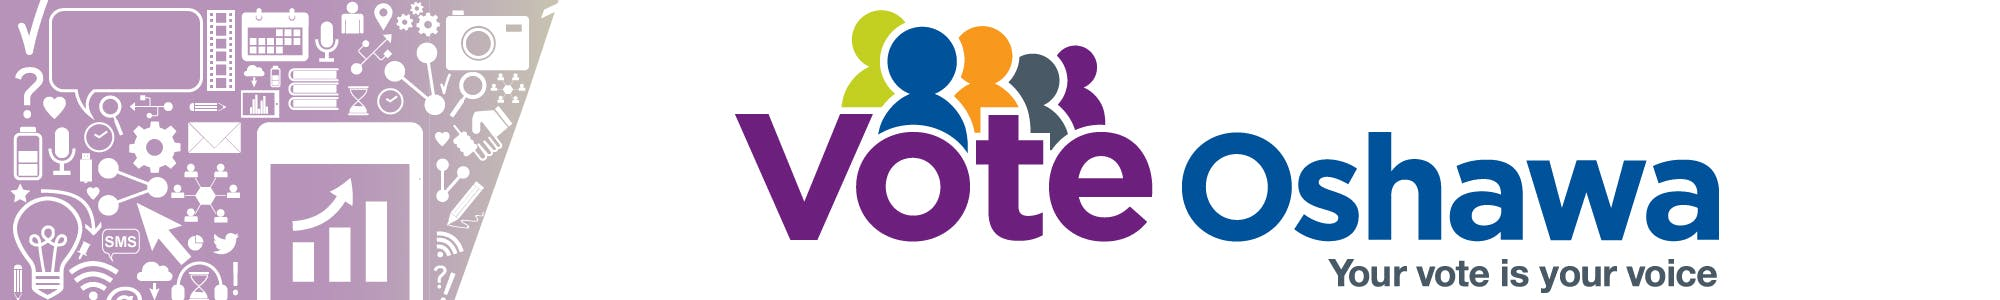 Vote Oshawa on Monday, October 22, your vote is your voice.